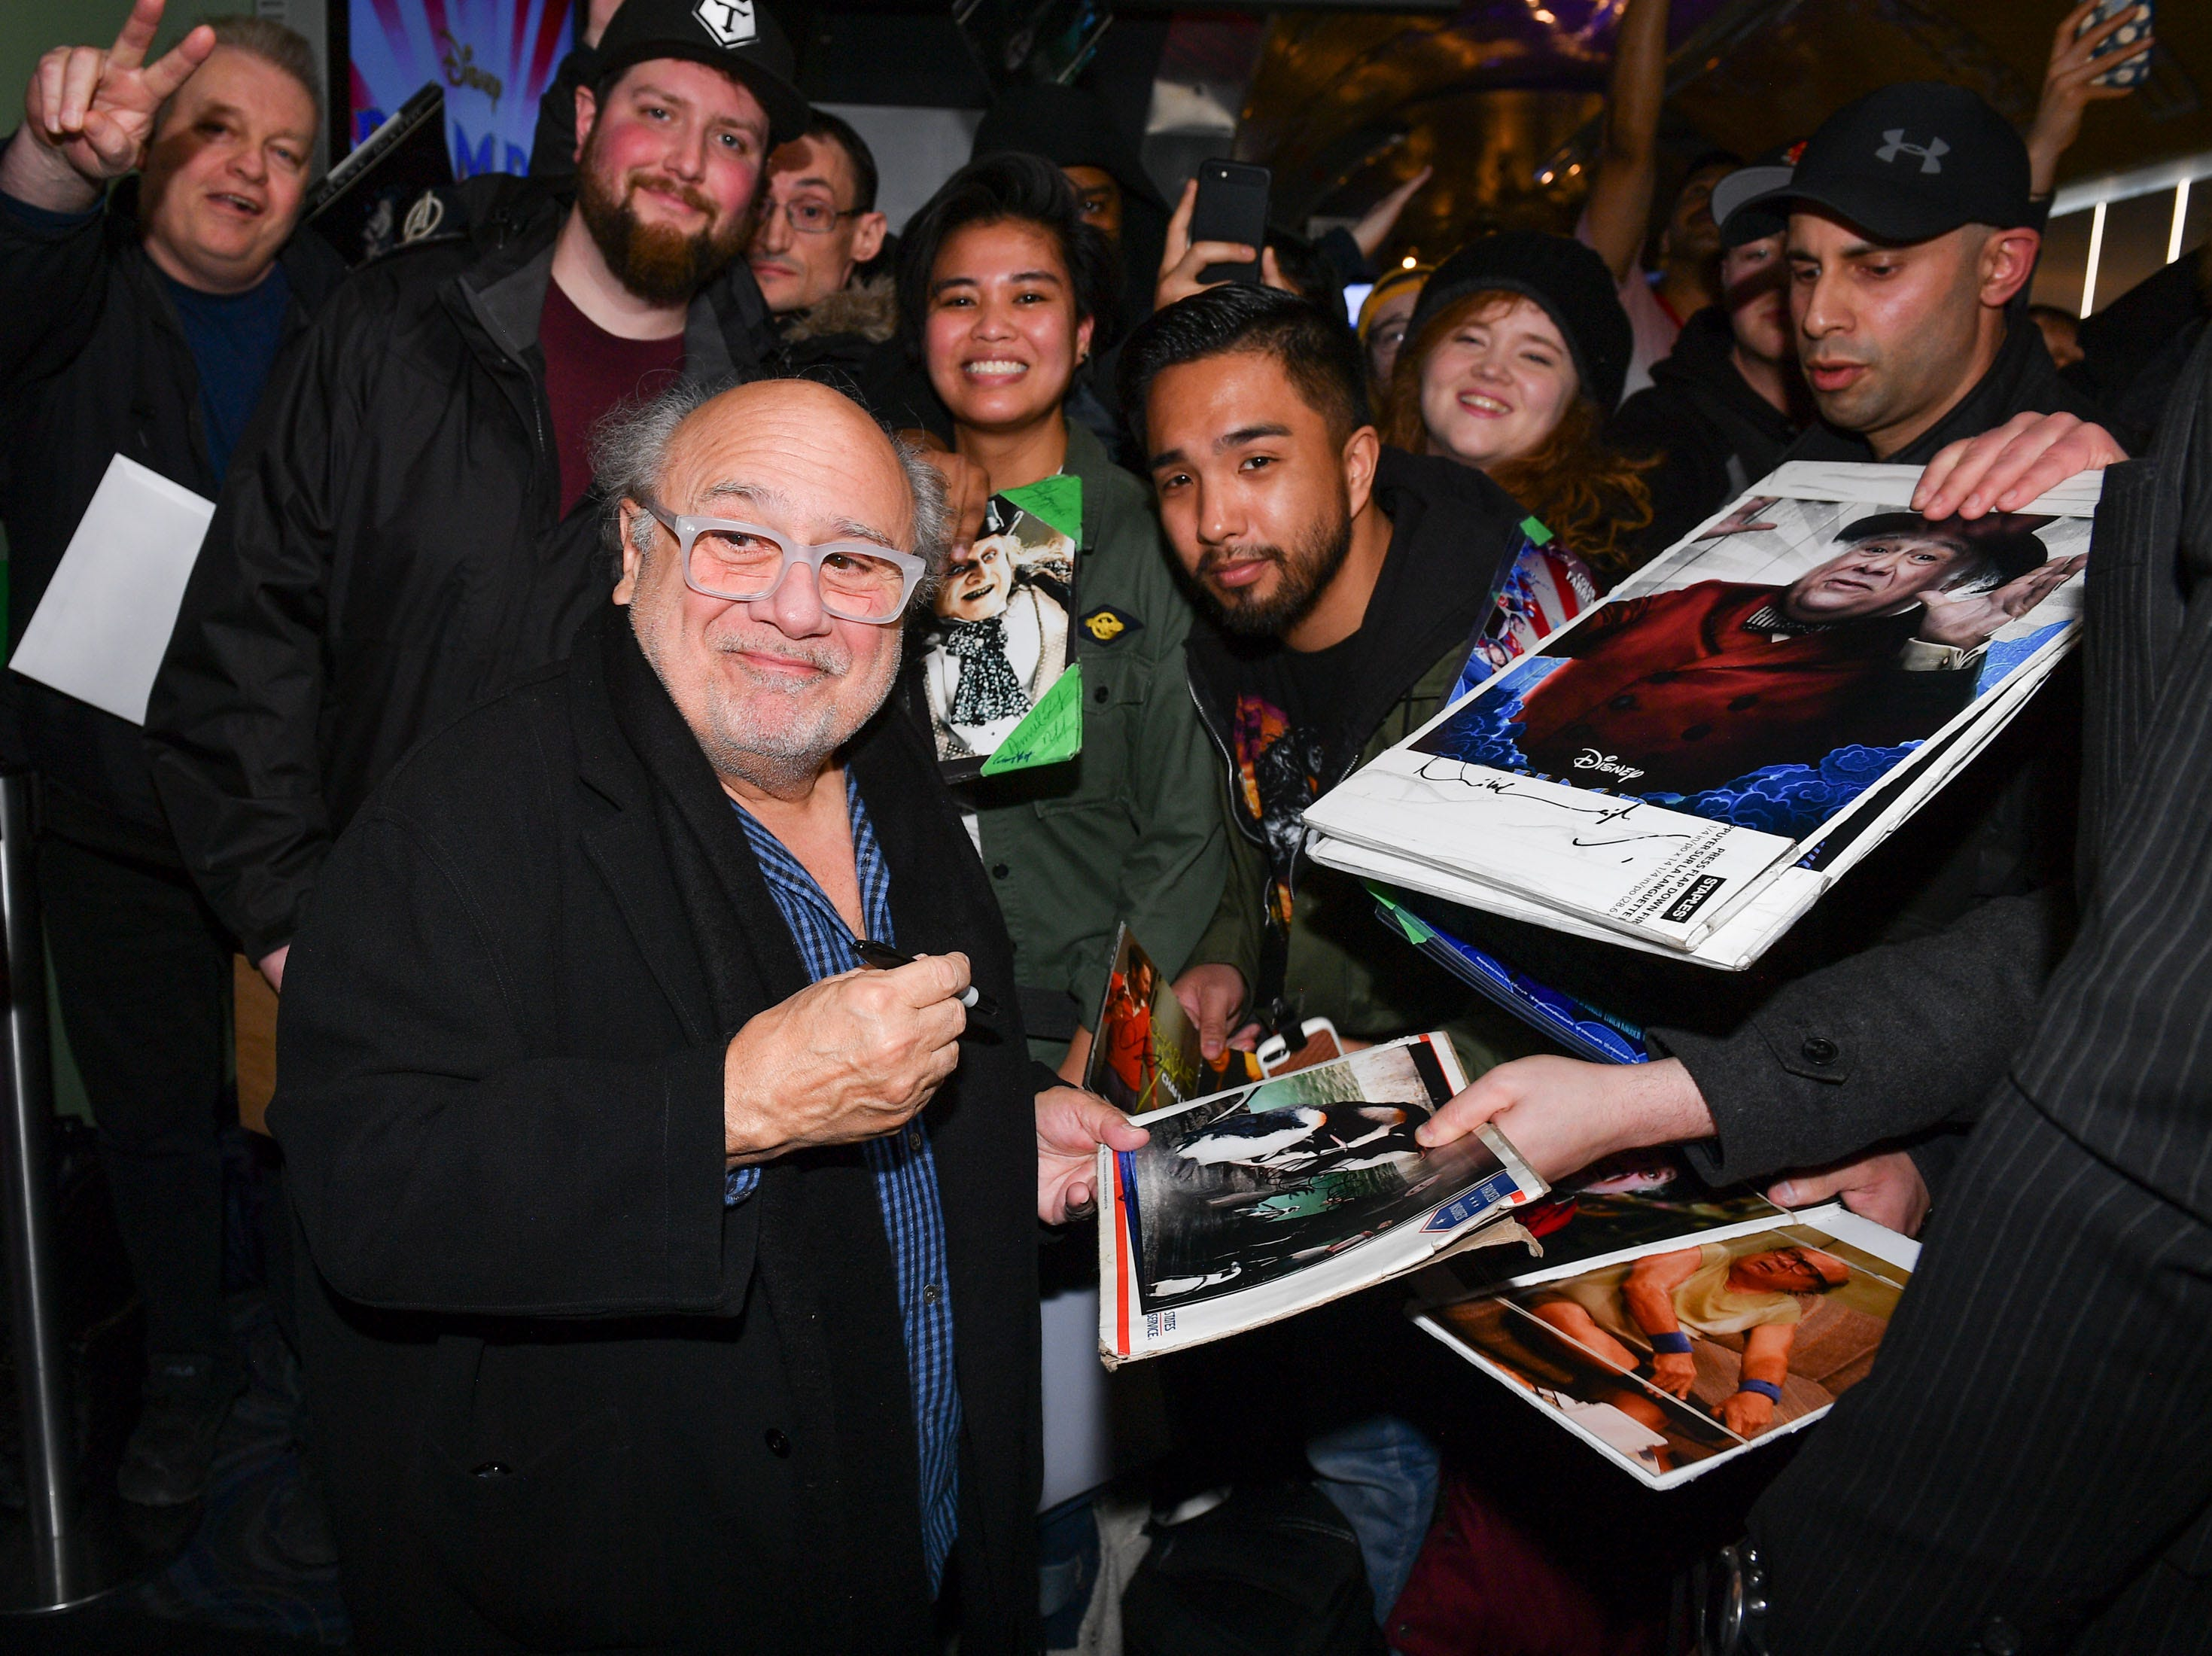 TORONTO, ONTARIO - MARCH 18:  Actor Danny DeVito attends the 'Dumbo' Canadian Premiere held at Scotiabank Theatre on March 18, 2019 in Toronto, Canada. (Photo by George Pimentel/Getty Images for Disney Studios) ORG XMIT: 775303012 ORIG FILE ID: 1136700937